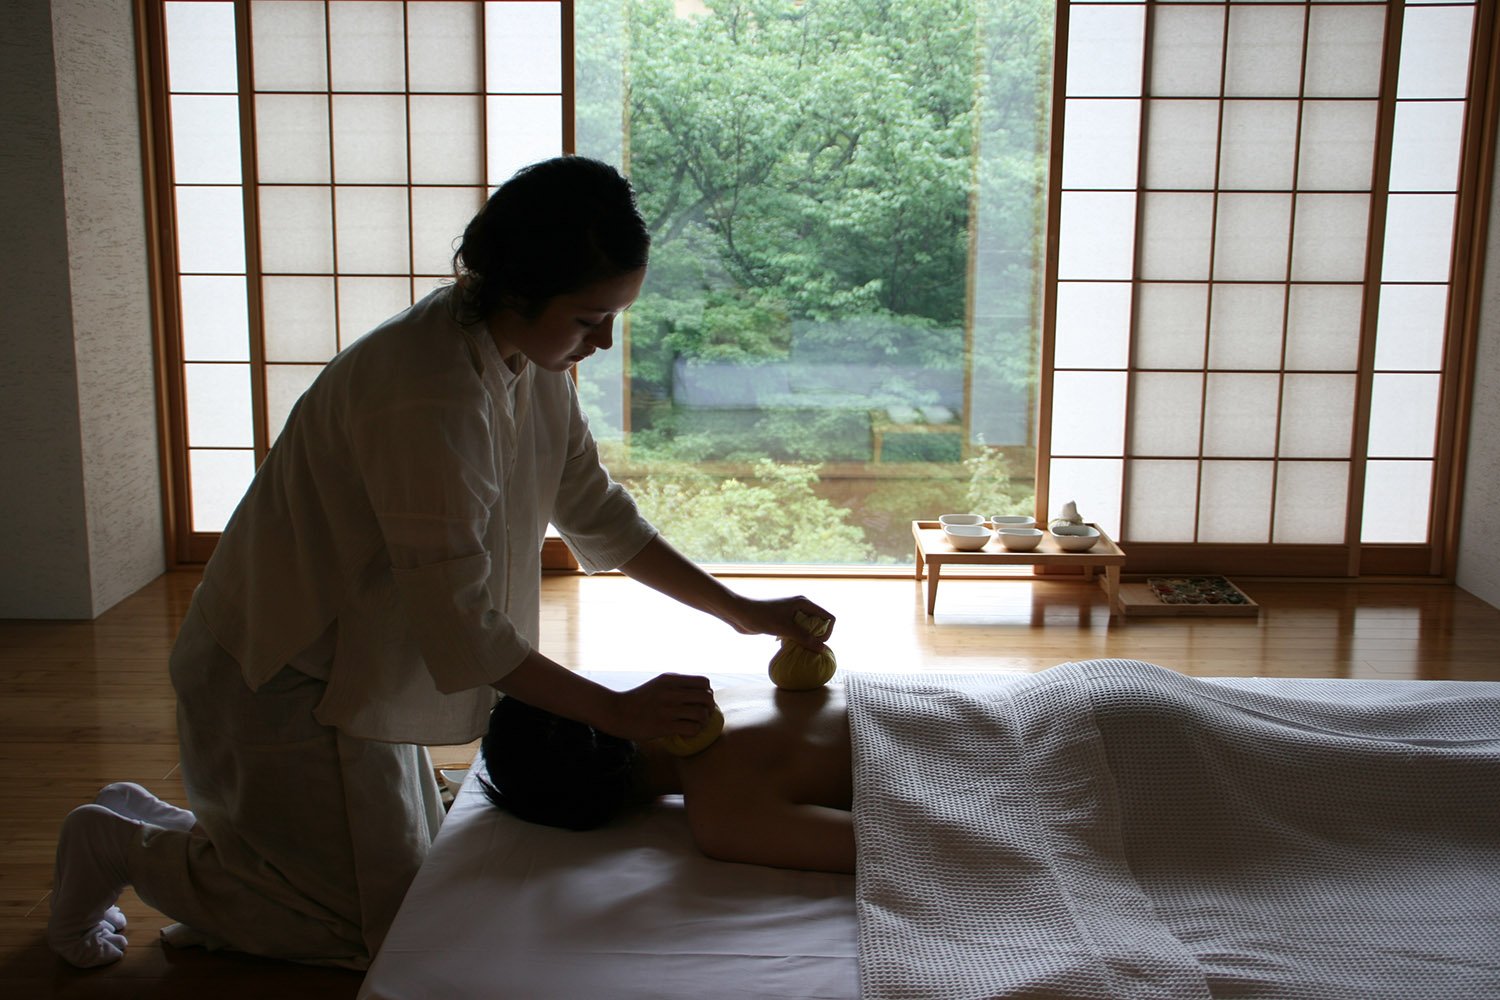 Spa treatment area[Entei] (4)_VillegaMag_Masae_Hara_for_Beniya_Mukayu_Japan